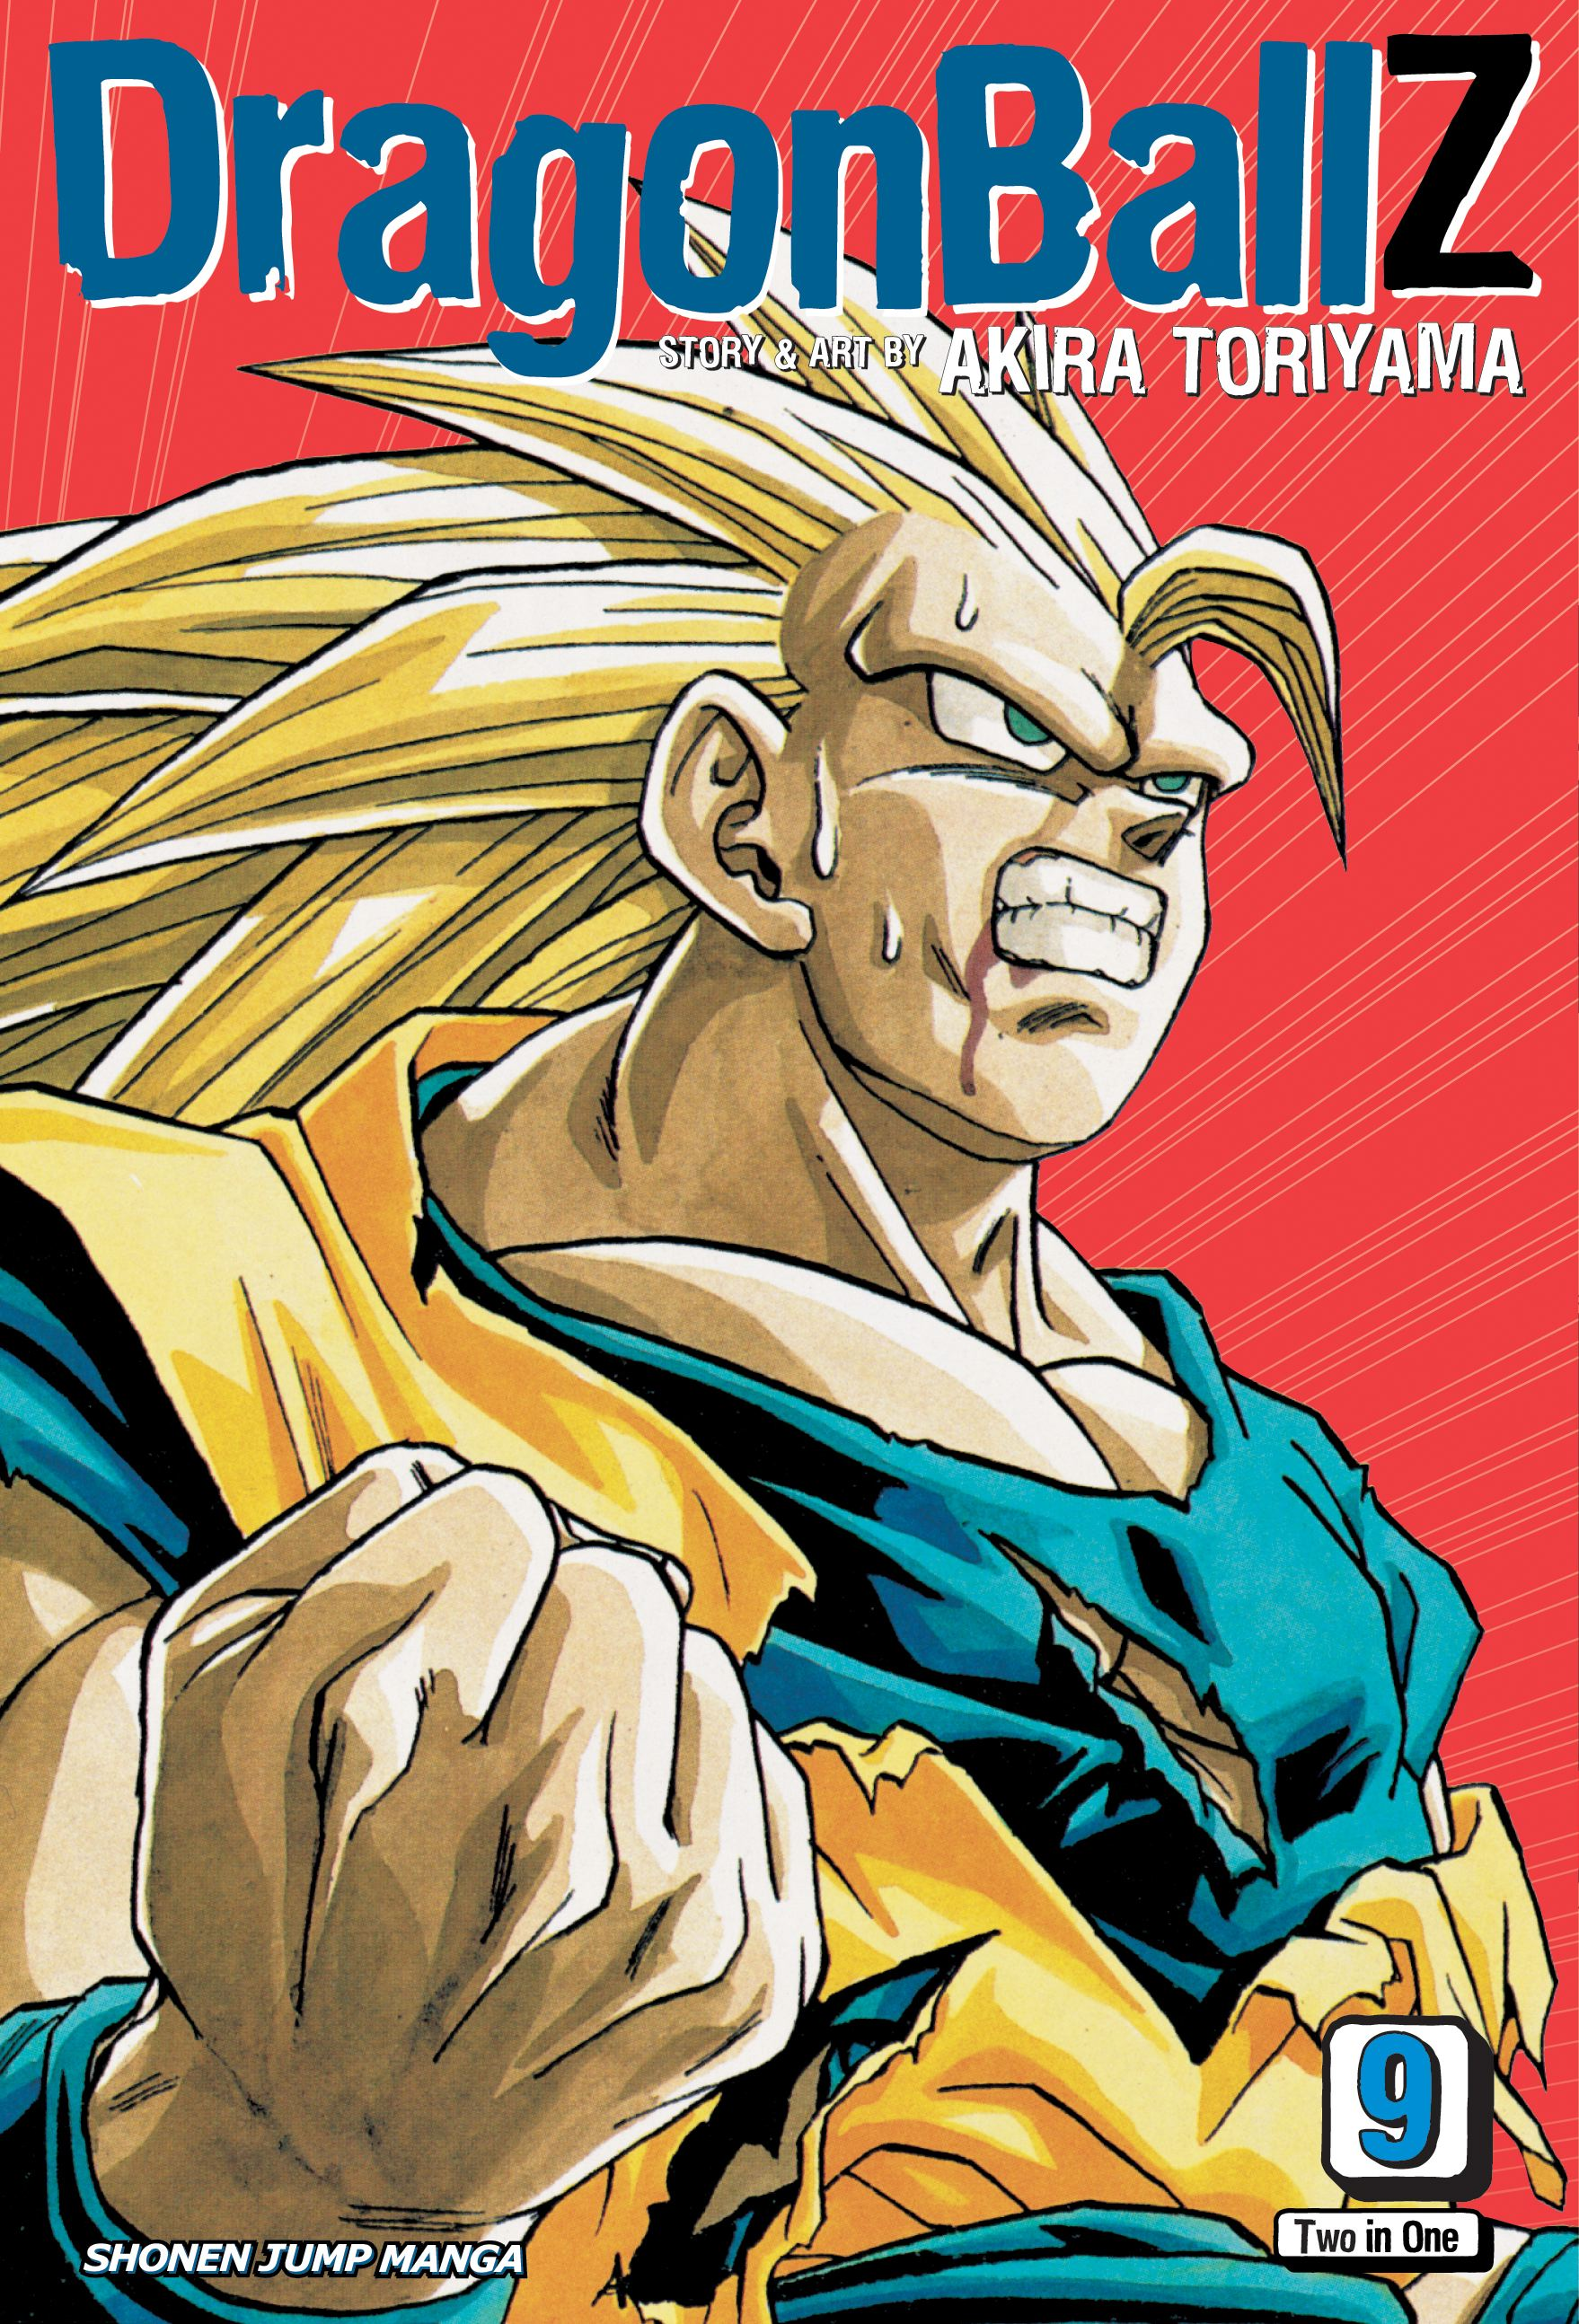 Dragon Ball Z Vol 9 Vizbig Edition Book By Akira